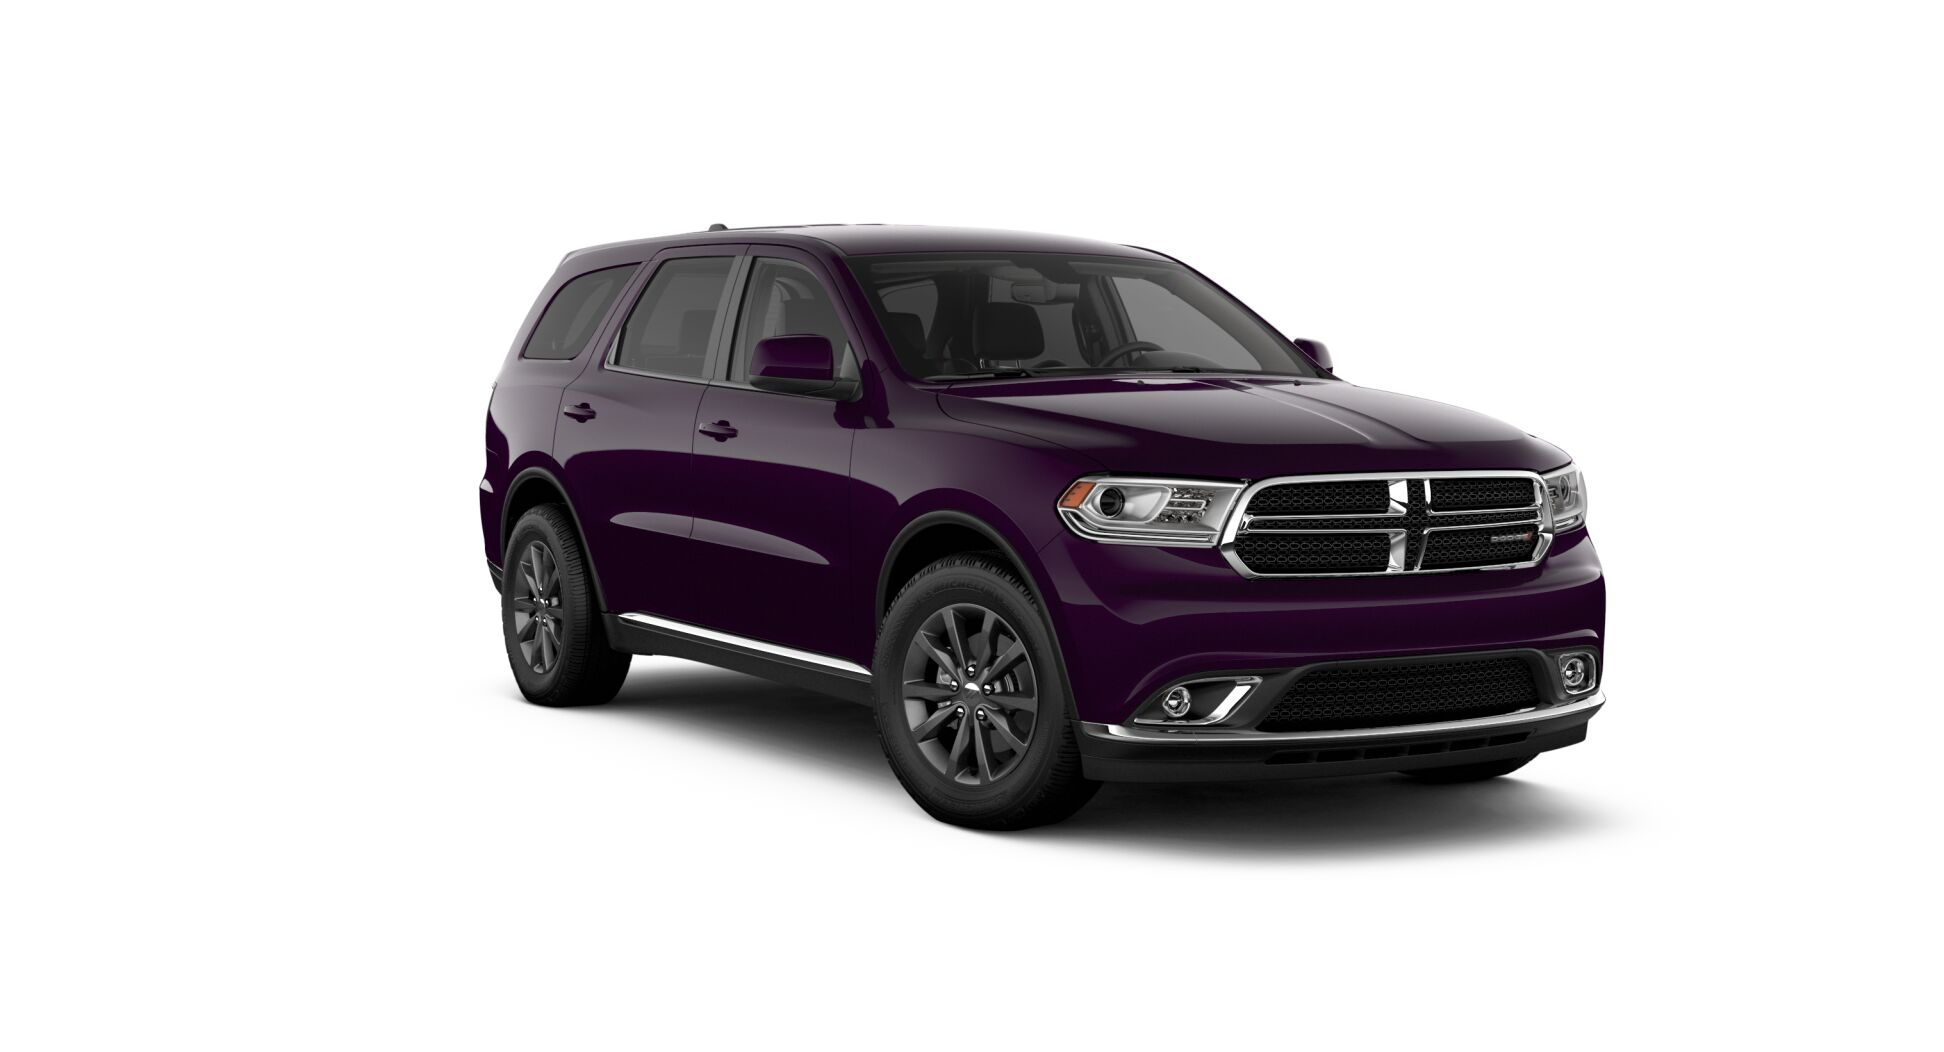 Ace Of Base 2020 Dodge Durango Sxt The Truth About Cars